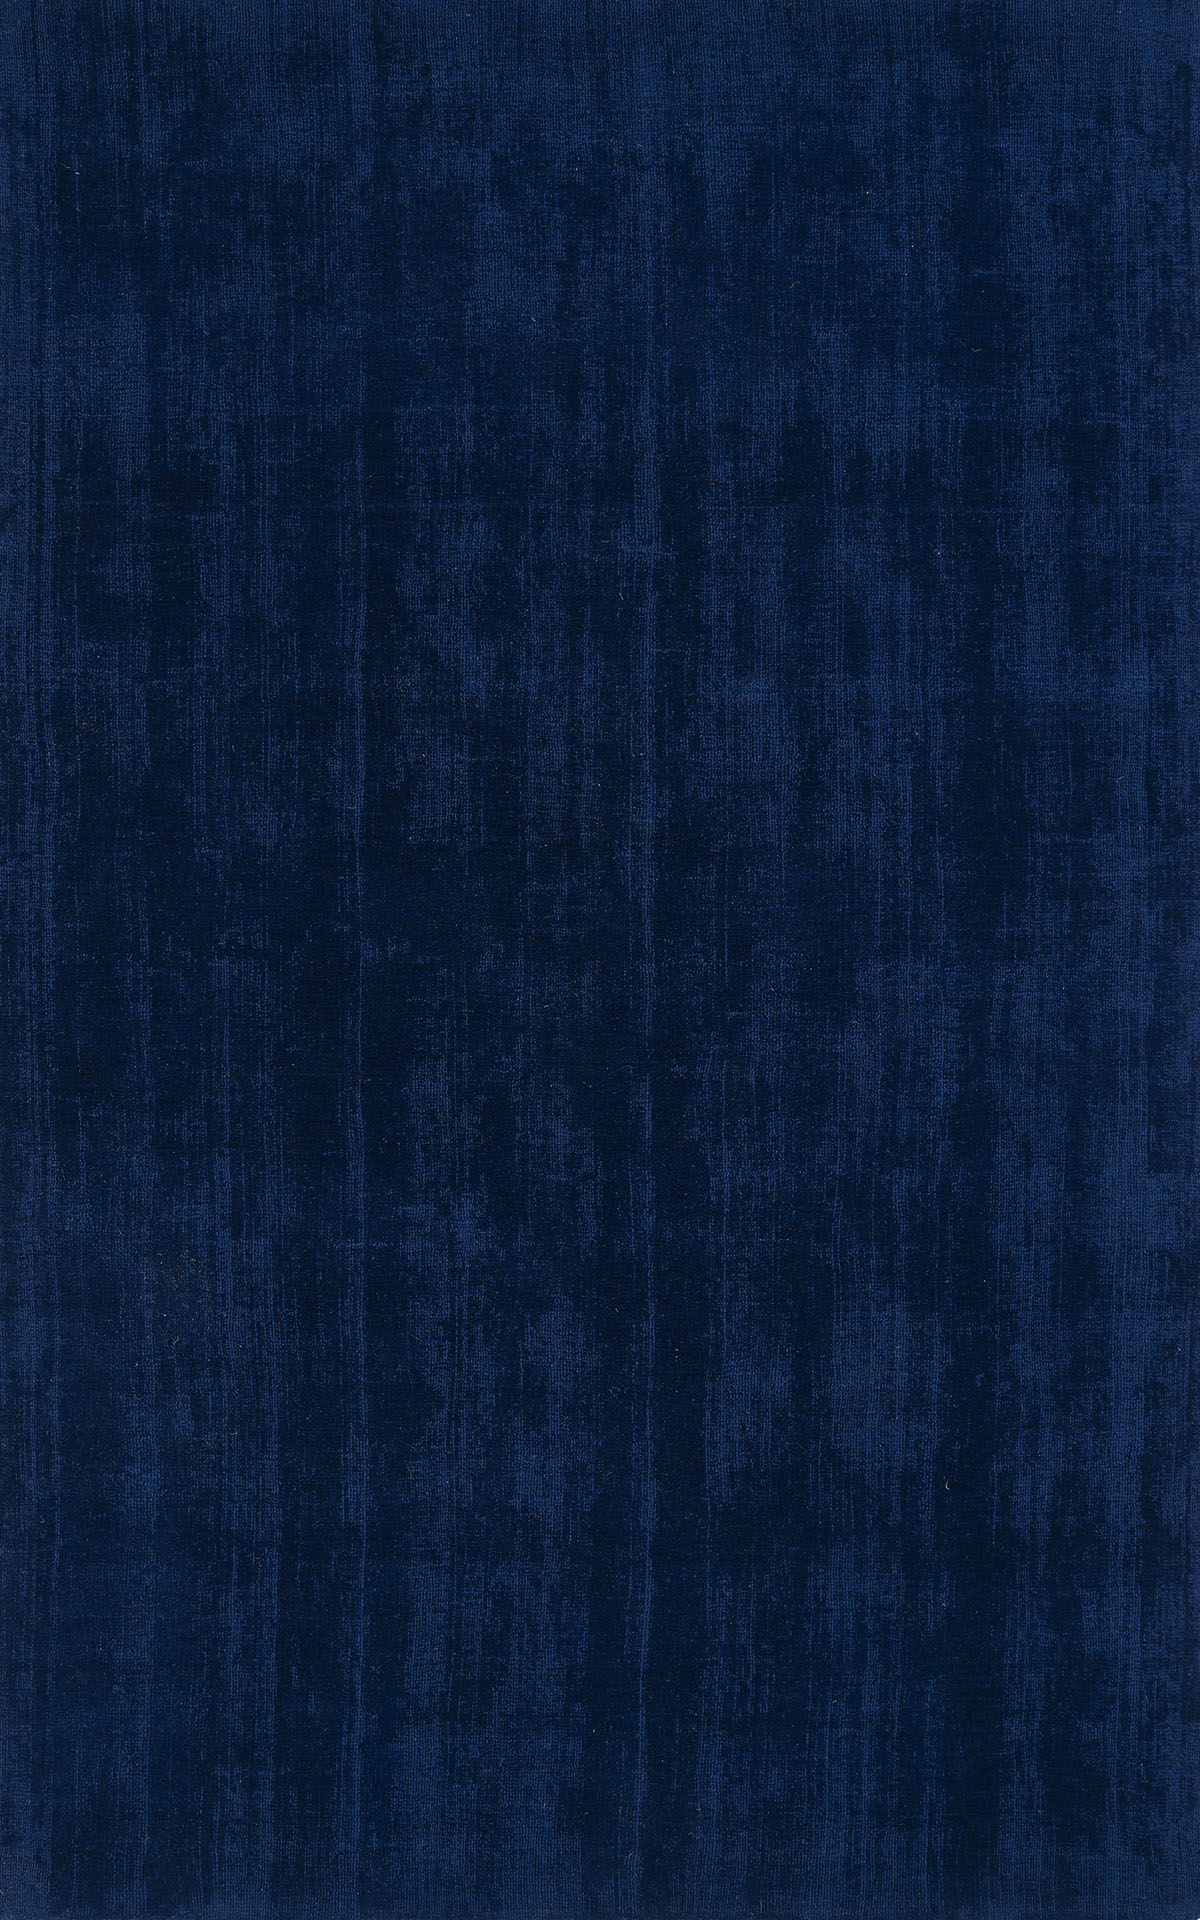 Dalyn Laramie Lr100 Navy Area Rug Free Shipping